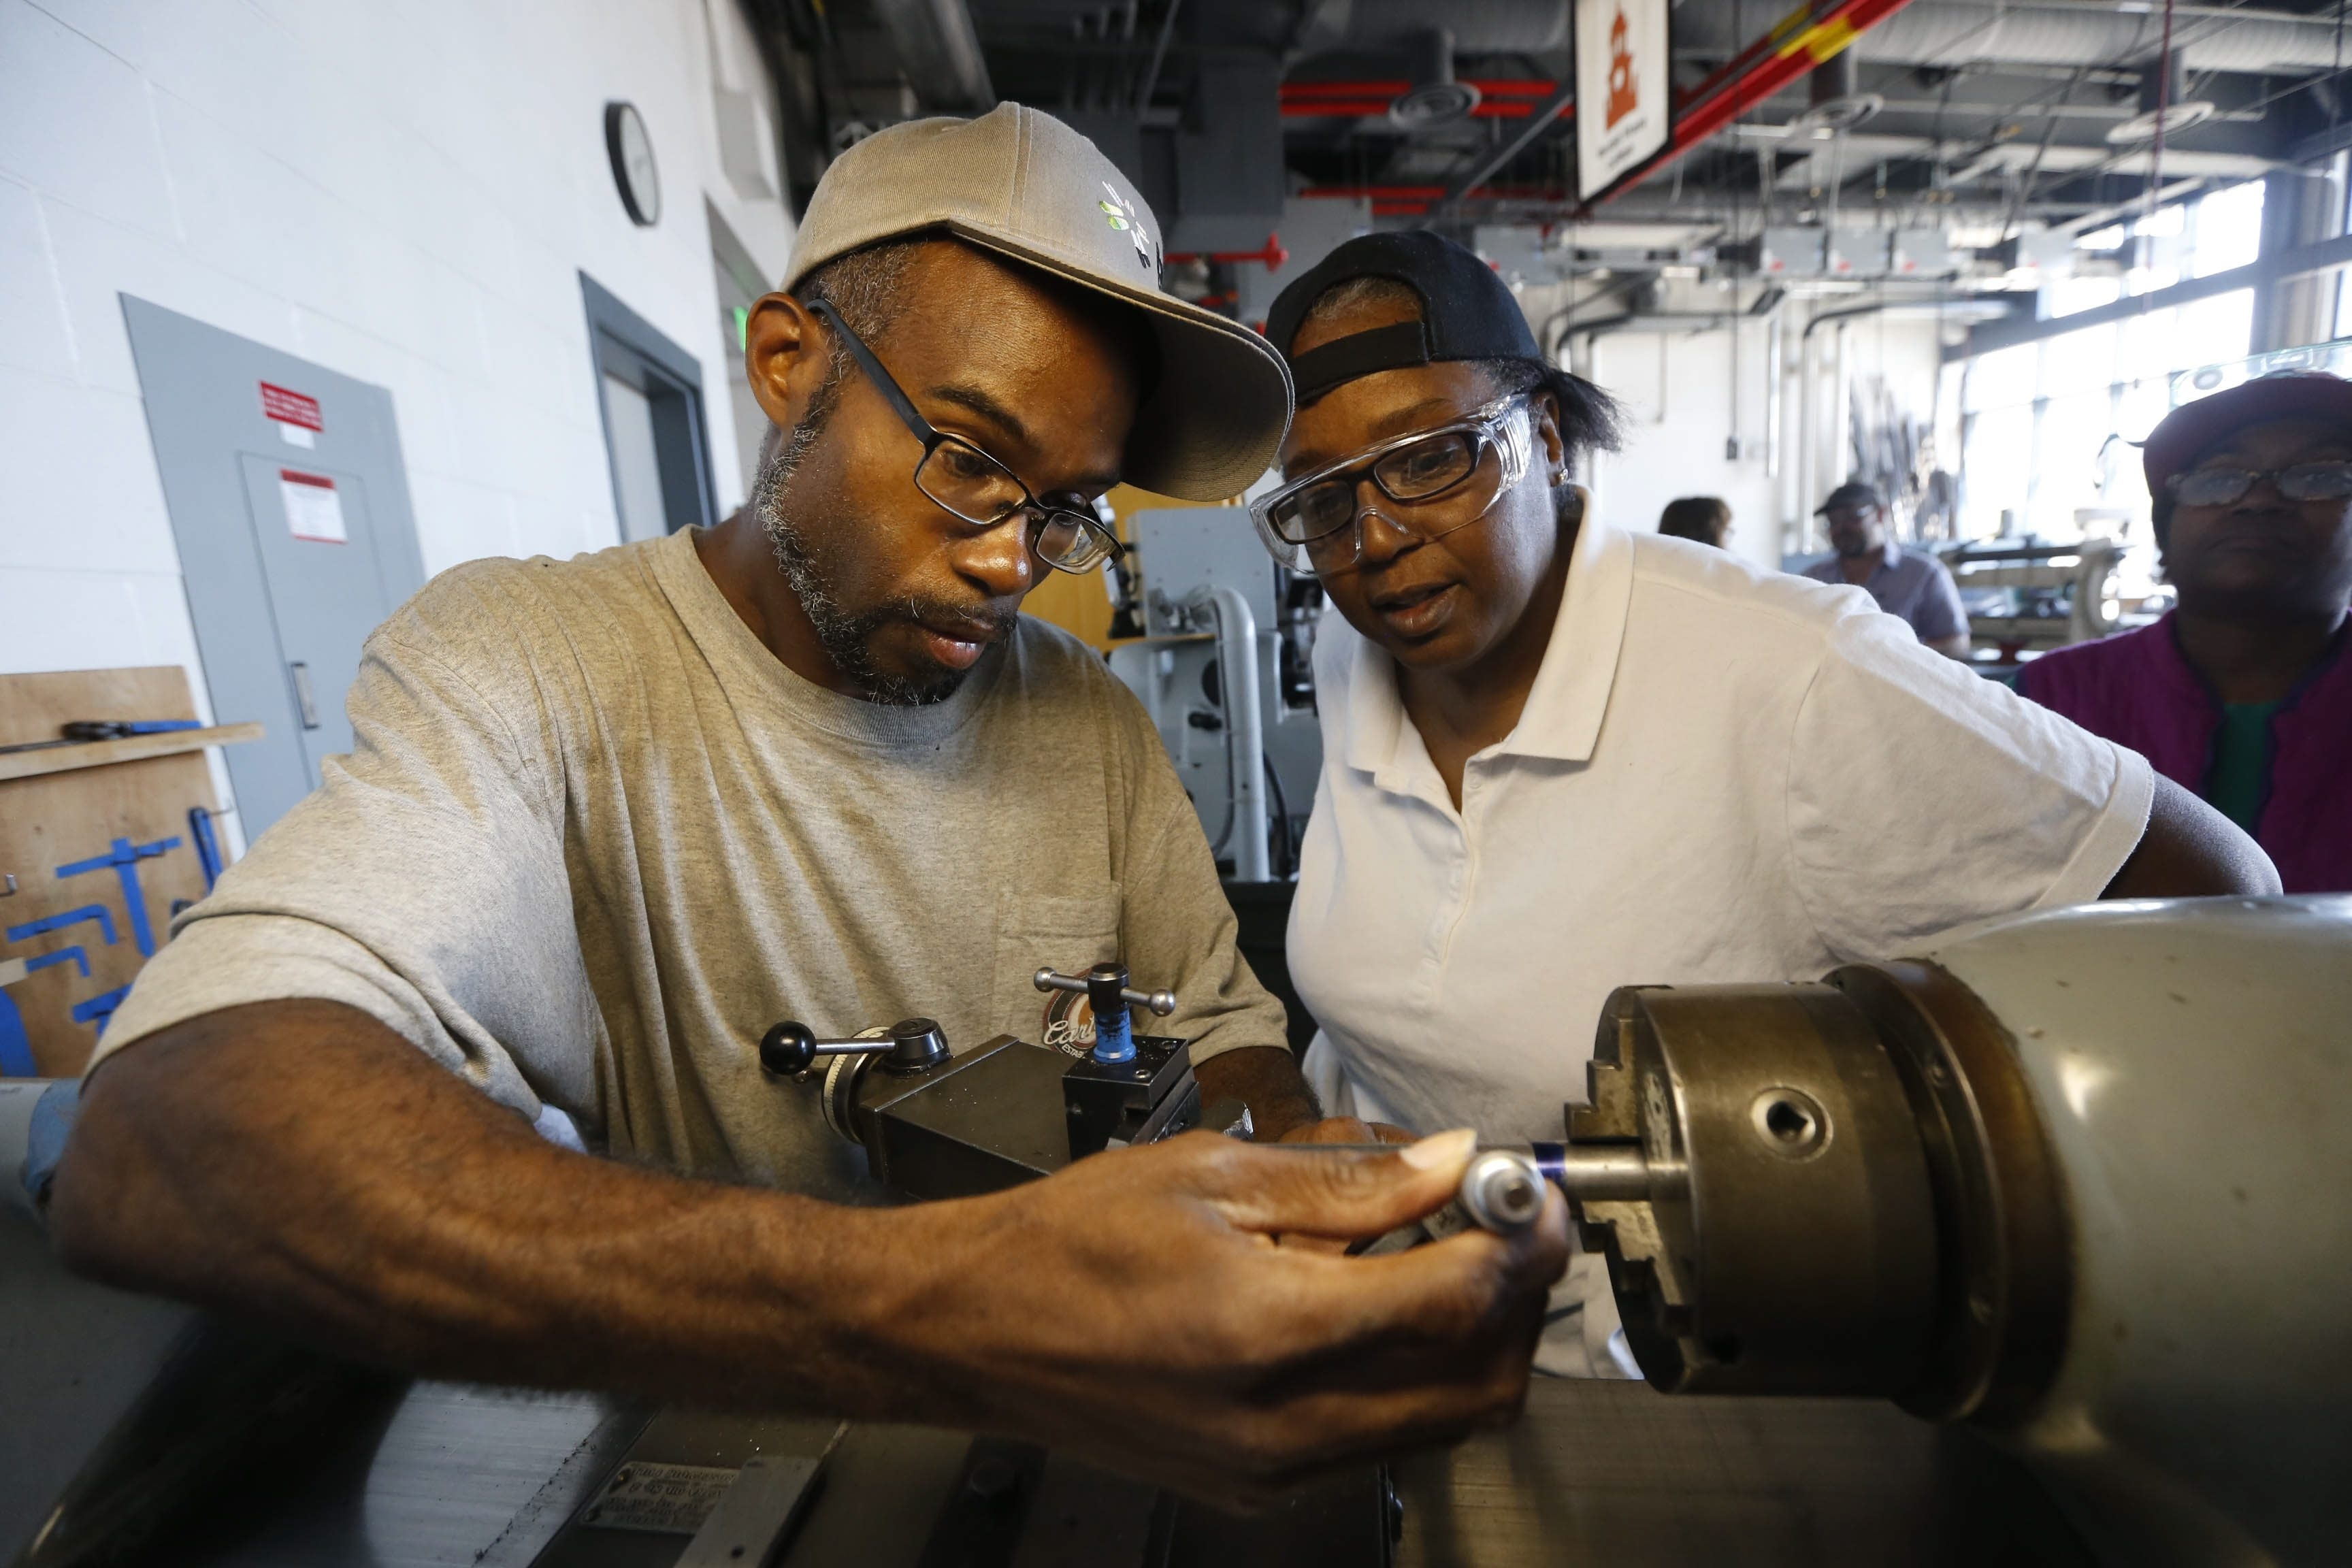 Eric Artis, left, and classmate Ruby Laster, both of Buffalo, work on a metal lathe machine at the Advanced Manufacturing Training Program at SUNY Buffalo State. The program is one of several in the region training people to replace retiring factory workers.